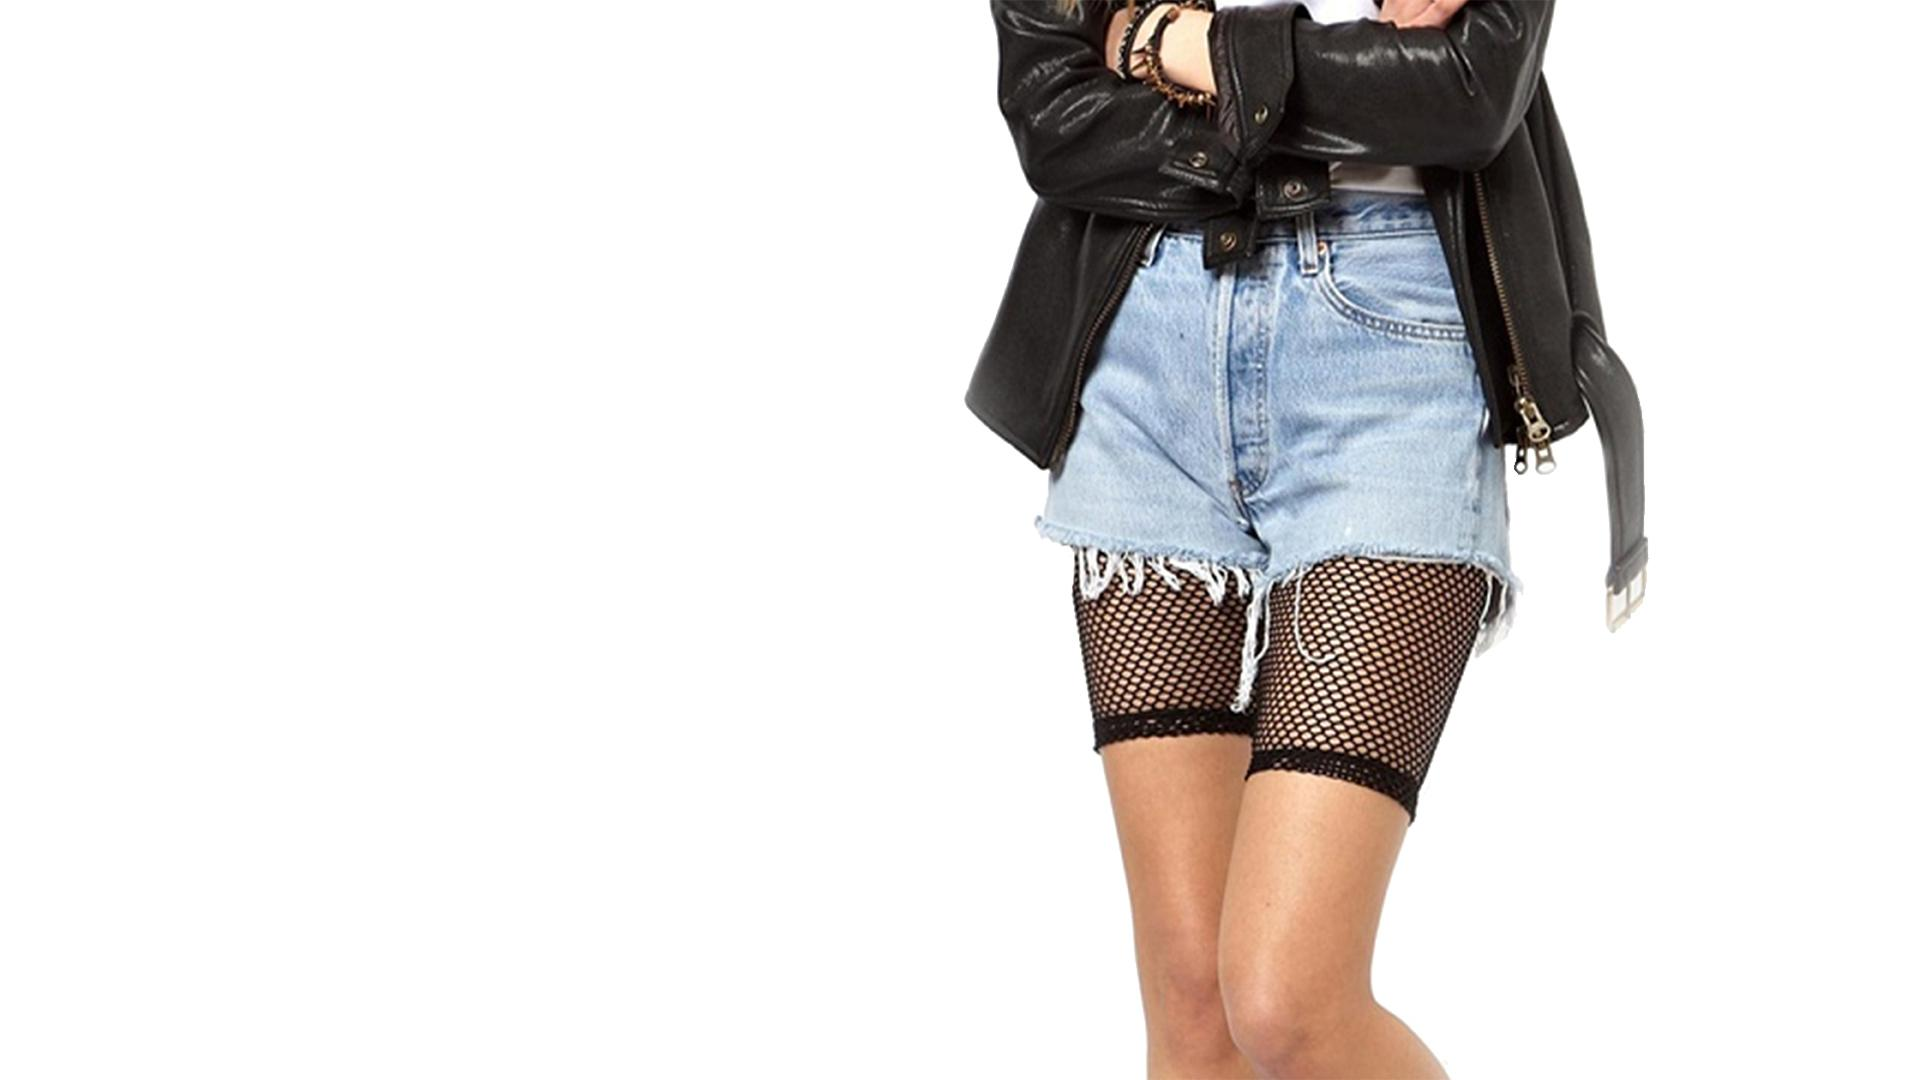 Fishnet Legging Shorts - 5 After Midnight - Up In Here